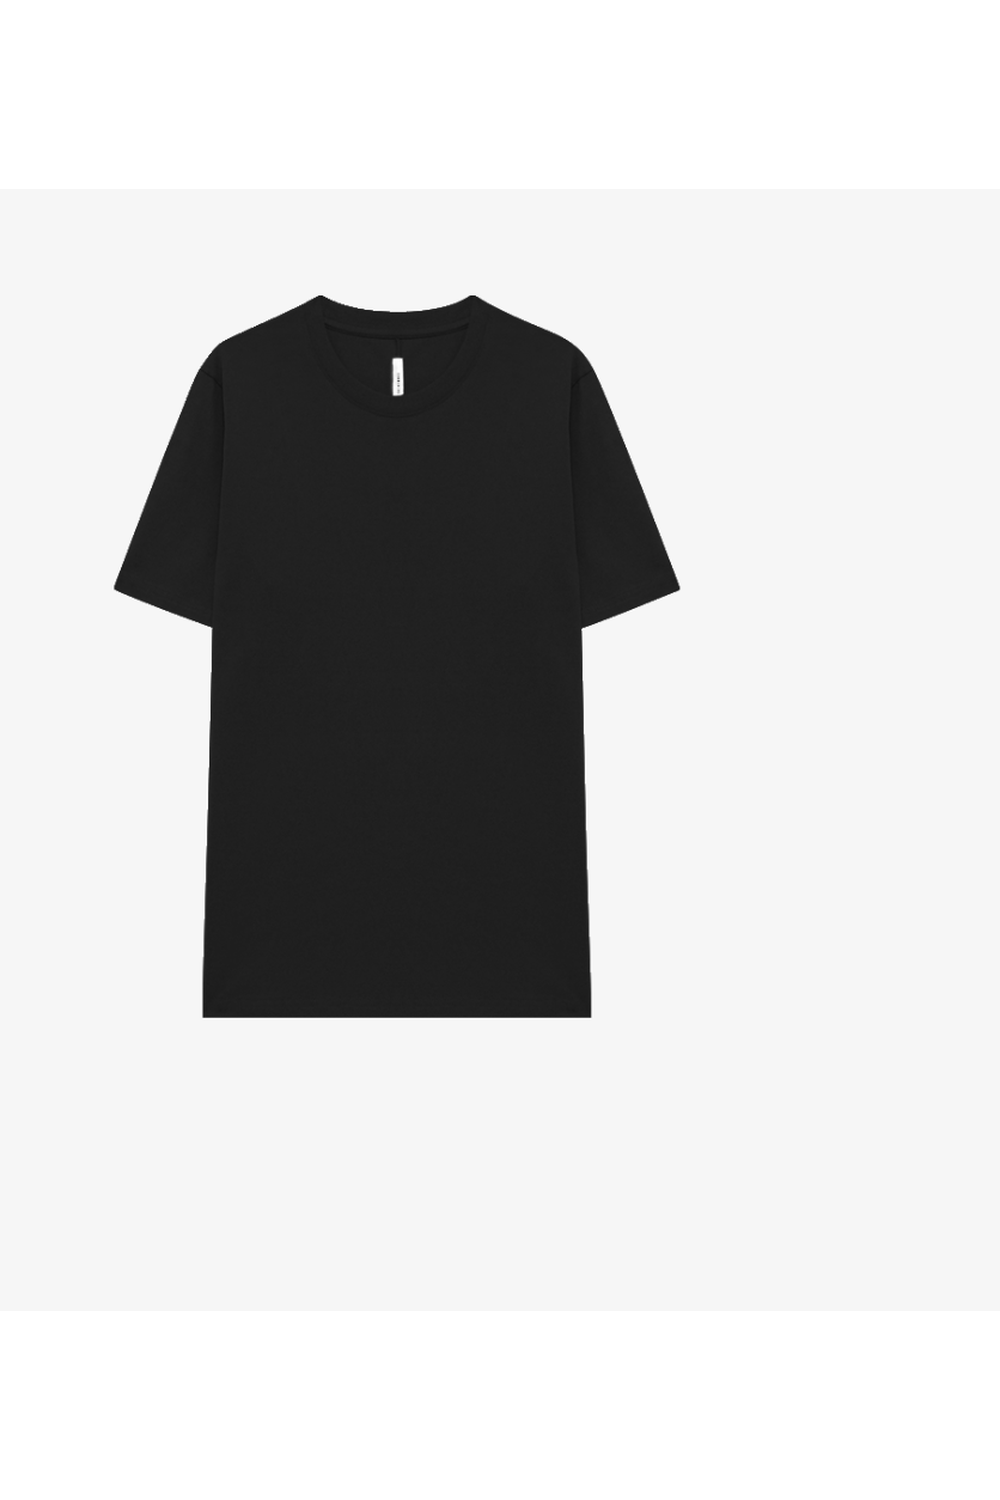 Standard Tee / Black | COMMONERS | Mad About The Boy